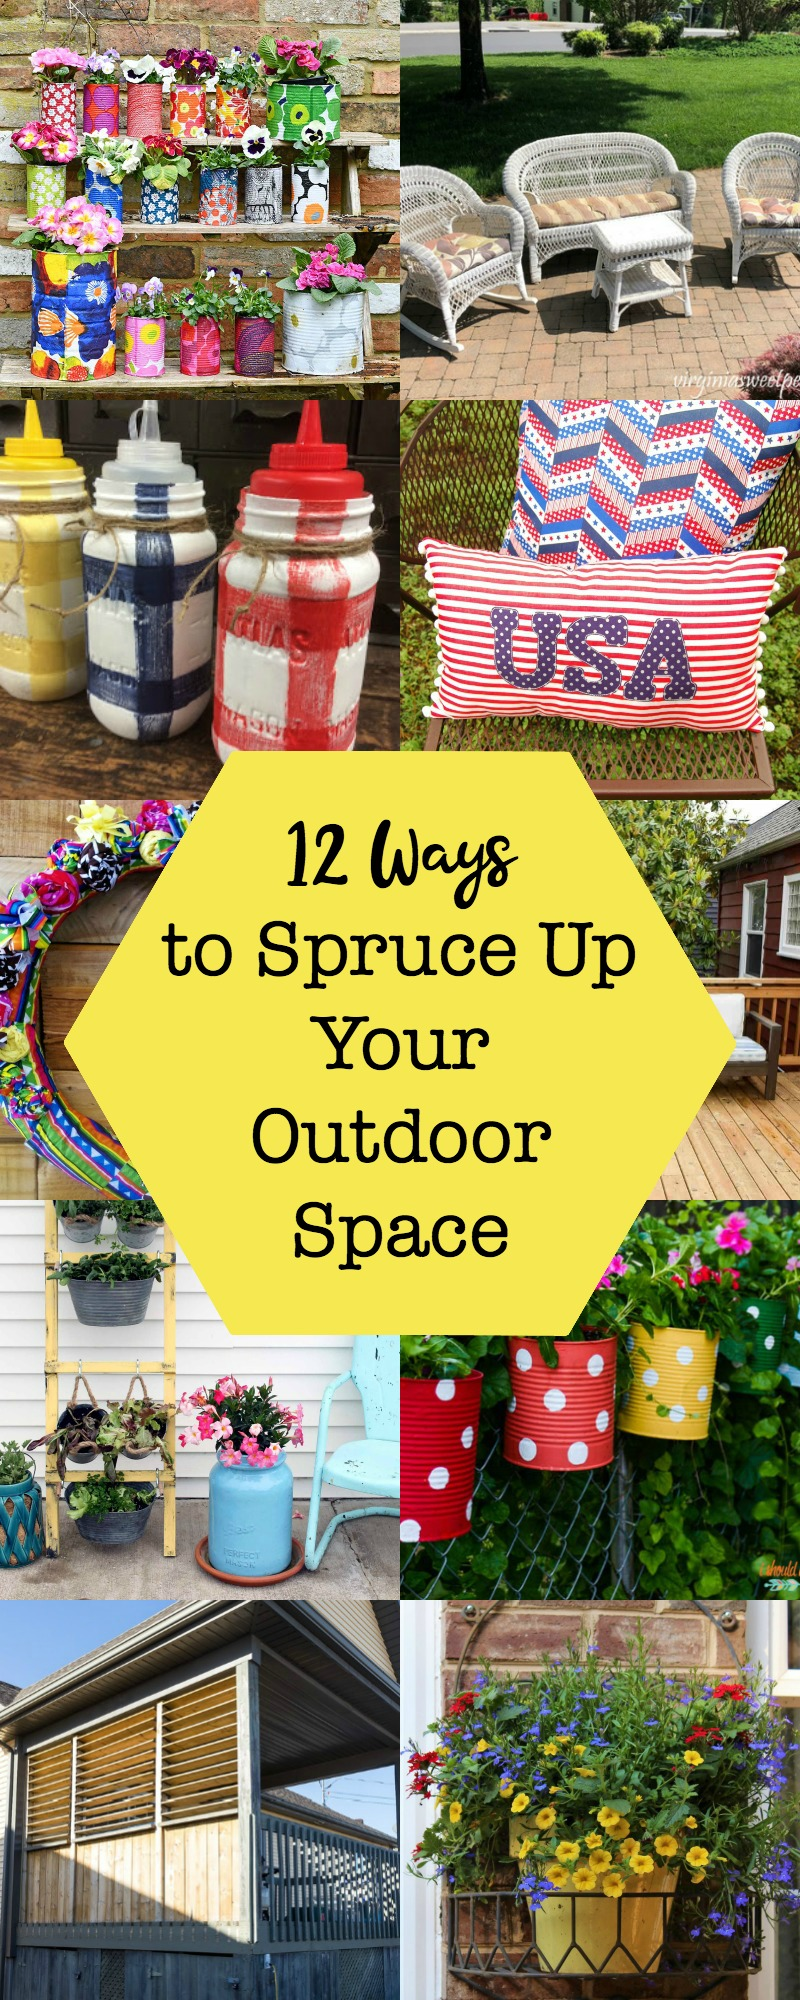 12 Ways to Spruce Up Your Outdoor Space